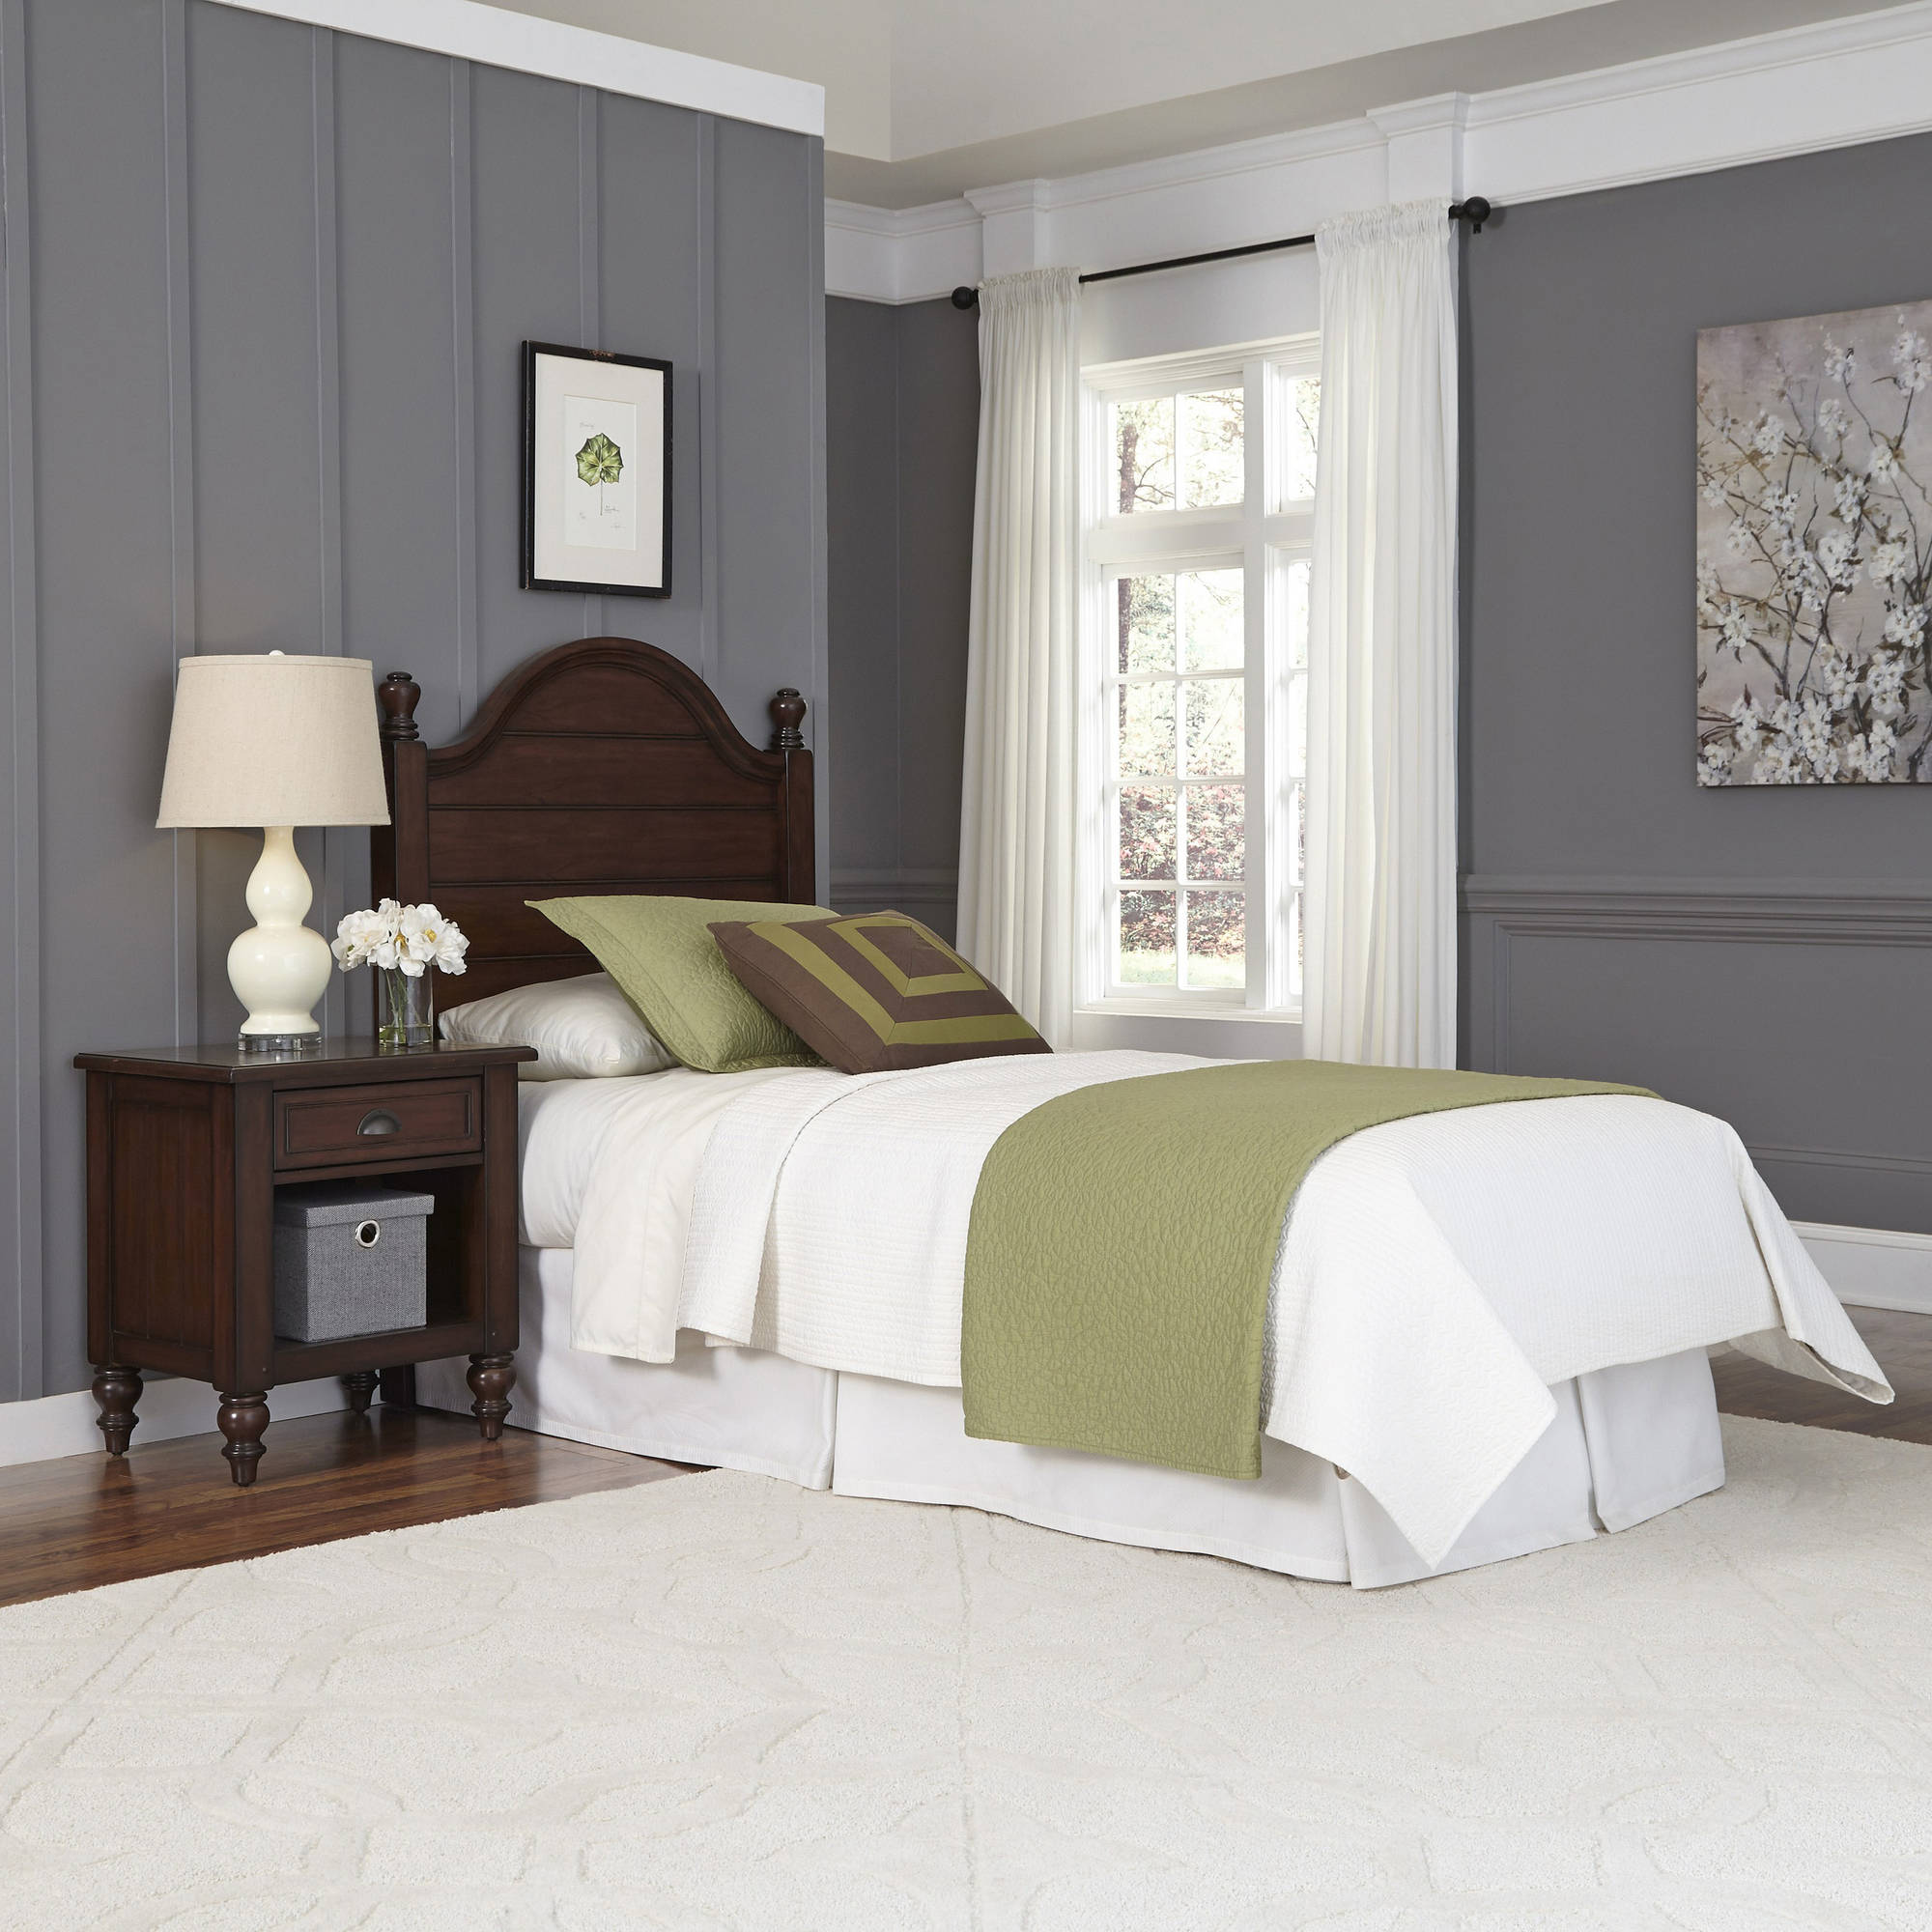 Home Styles Country Comfort Twin Headboard and Night Stand